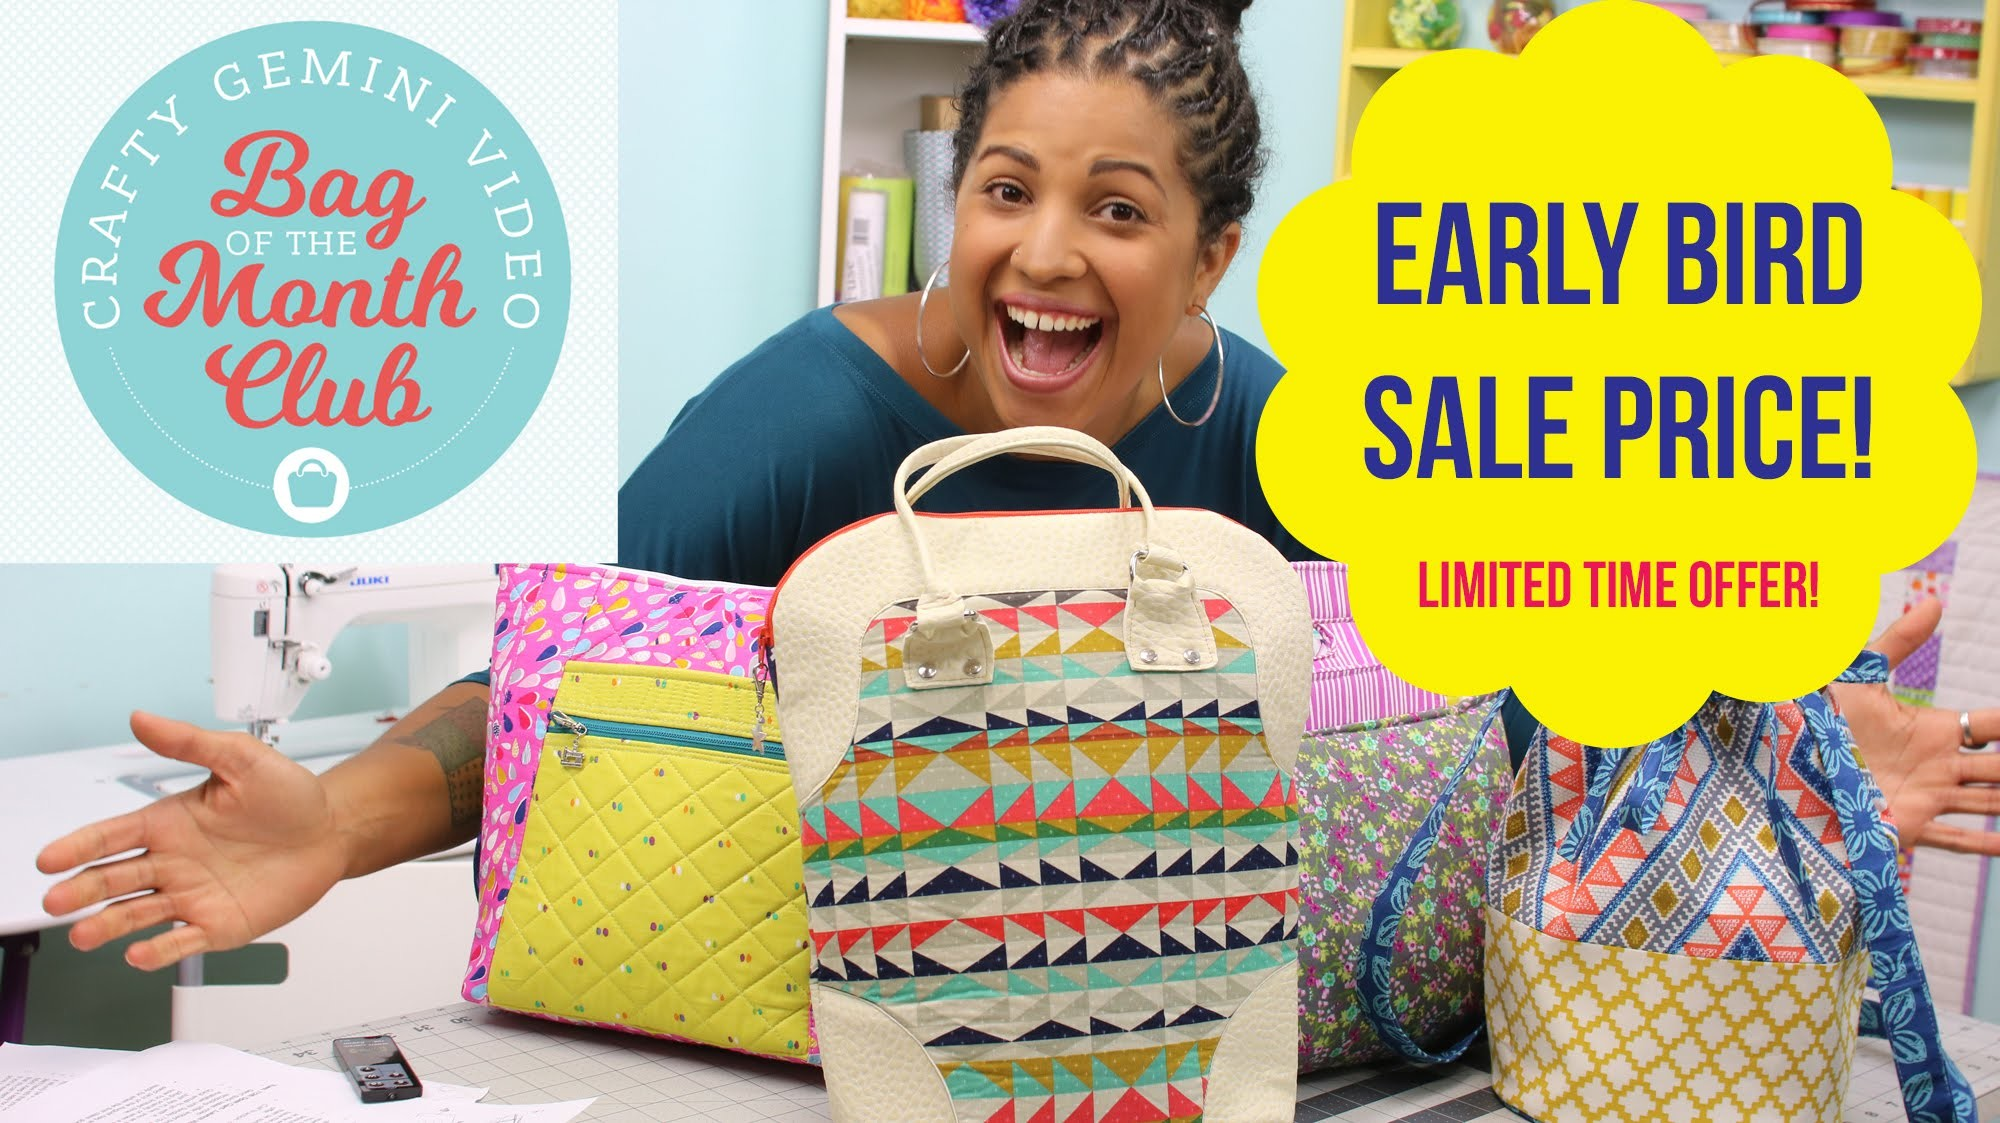 EARLY BIRD Sale Price for Bag of the Month Club by Crafty Gemini